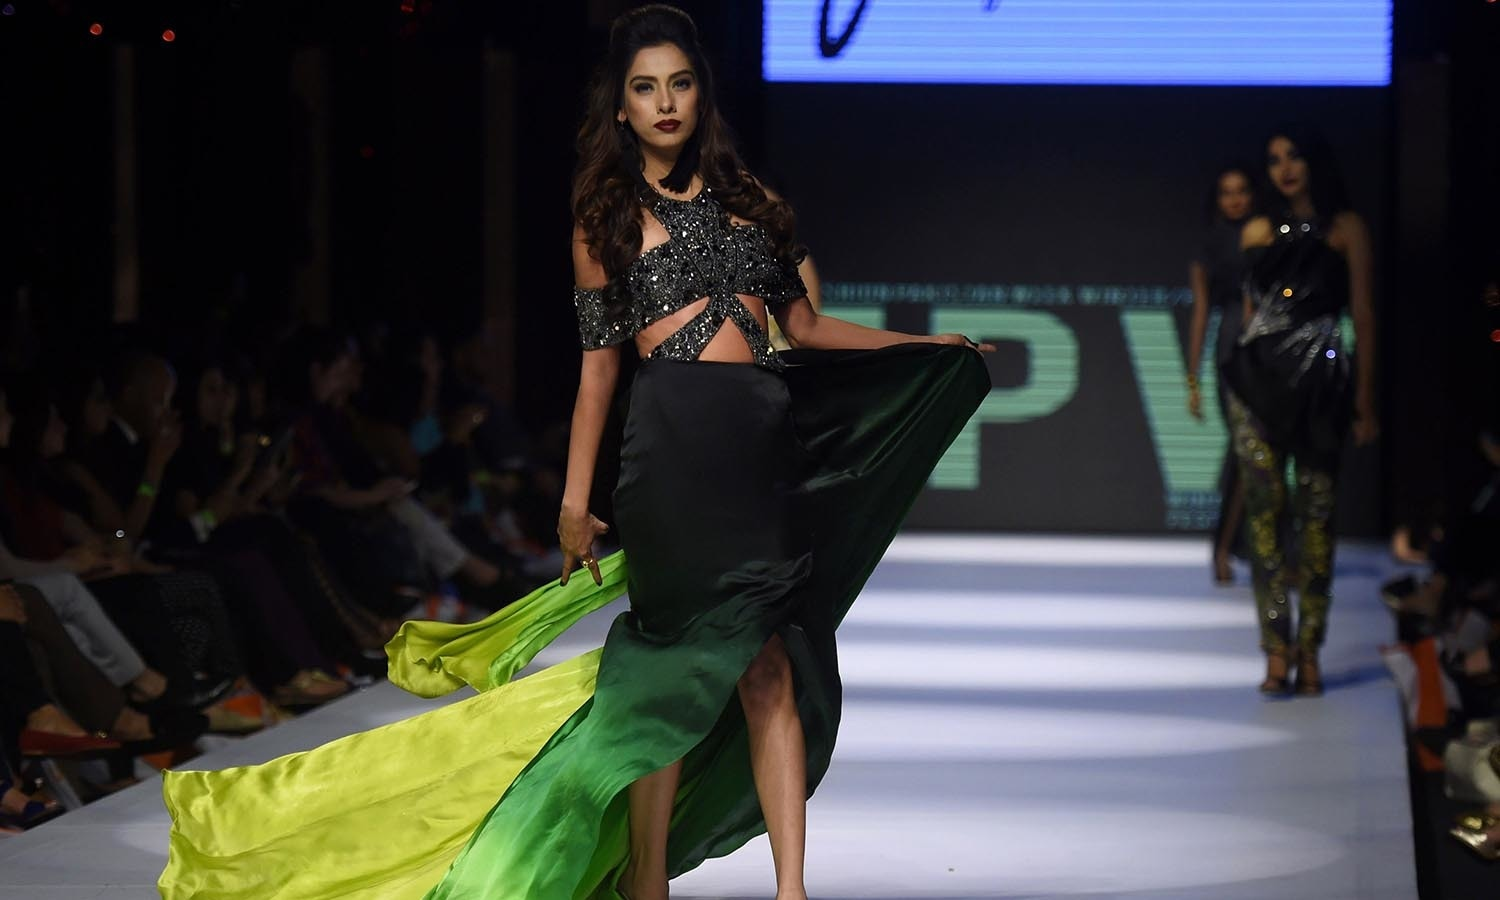 A model presents a creation by designer Ayesha Farook Hashwani on the first day of the Fashion Pakistan Week in Karachi. — AFP